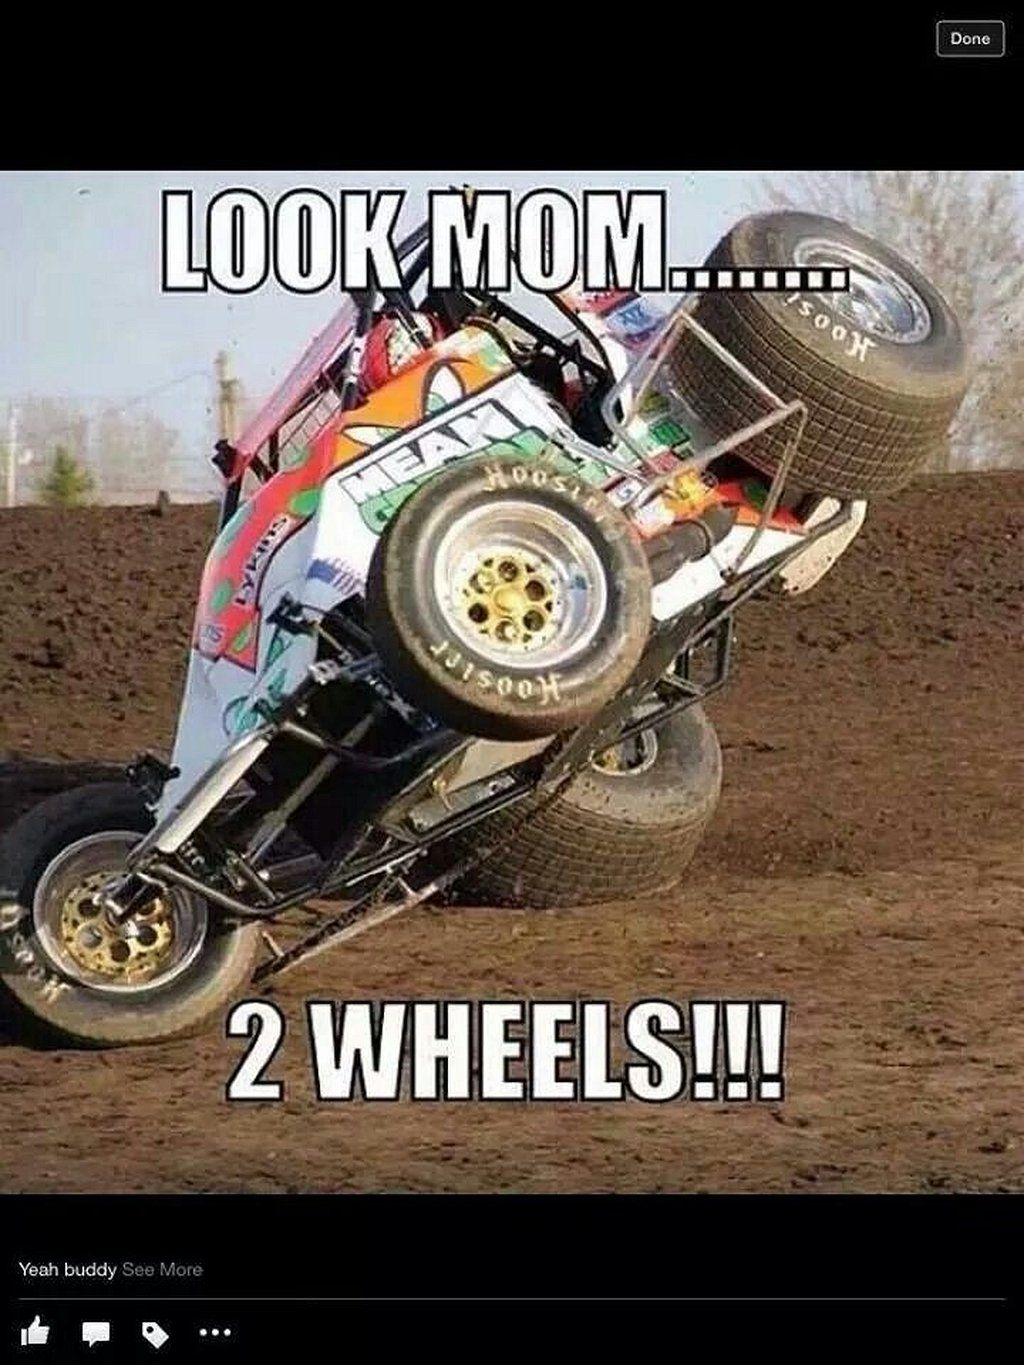 34 Racing Quotes Dirt Track Funny Https Www Mobmasker Com 34 Racing Quotes Dirt Track Funny Racing Quotes Sprint Car Racing Dirt Track Cars